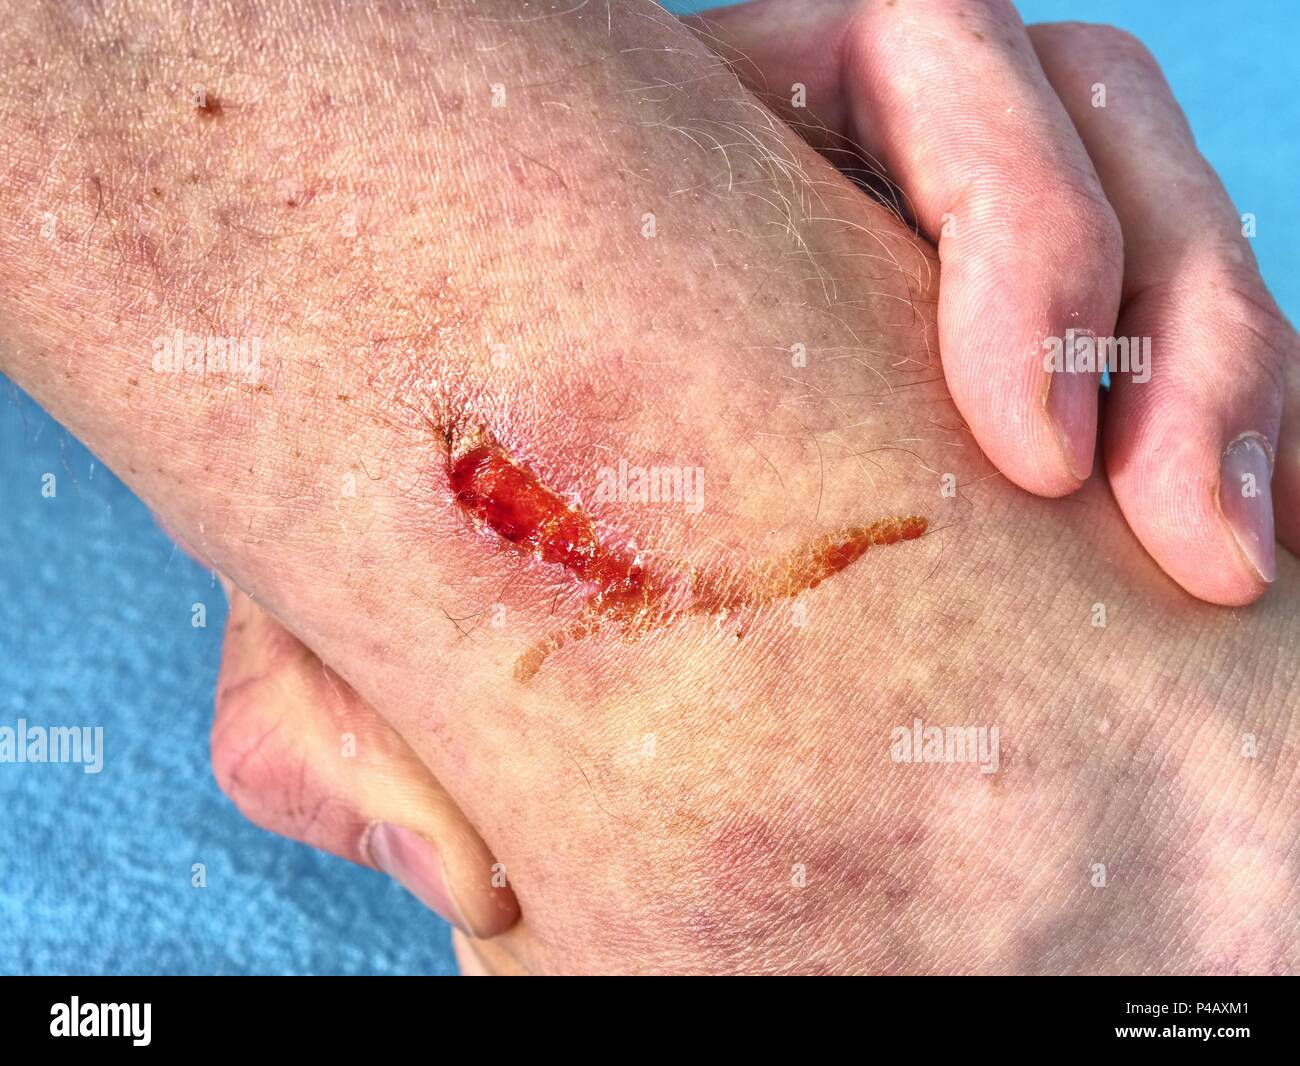 Hand embracing injured leg with painful place  Doctor hand